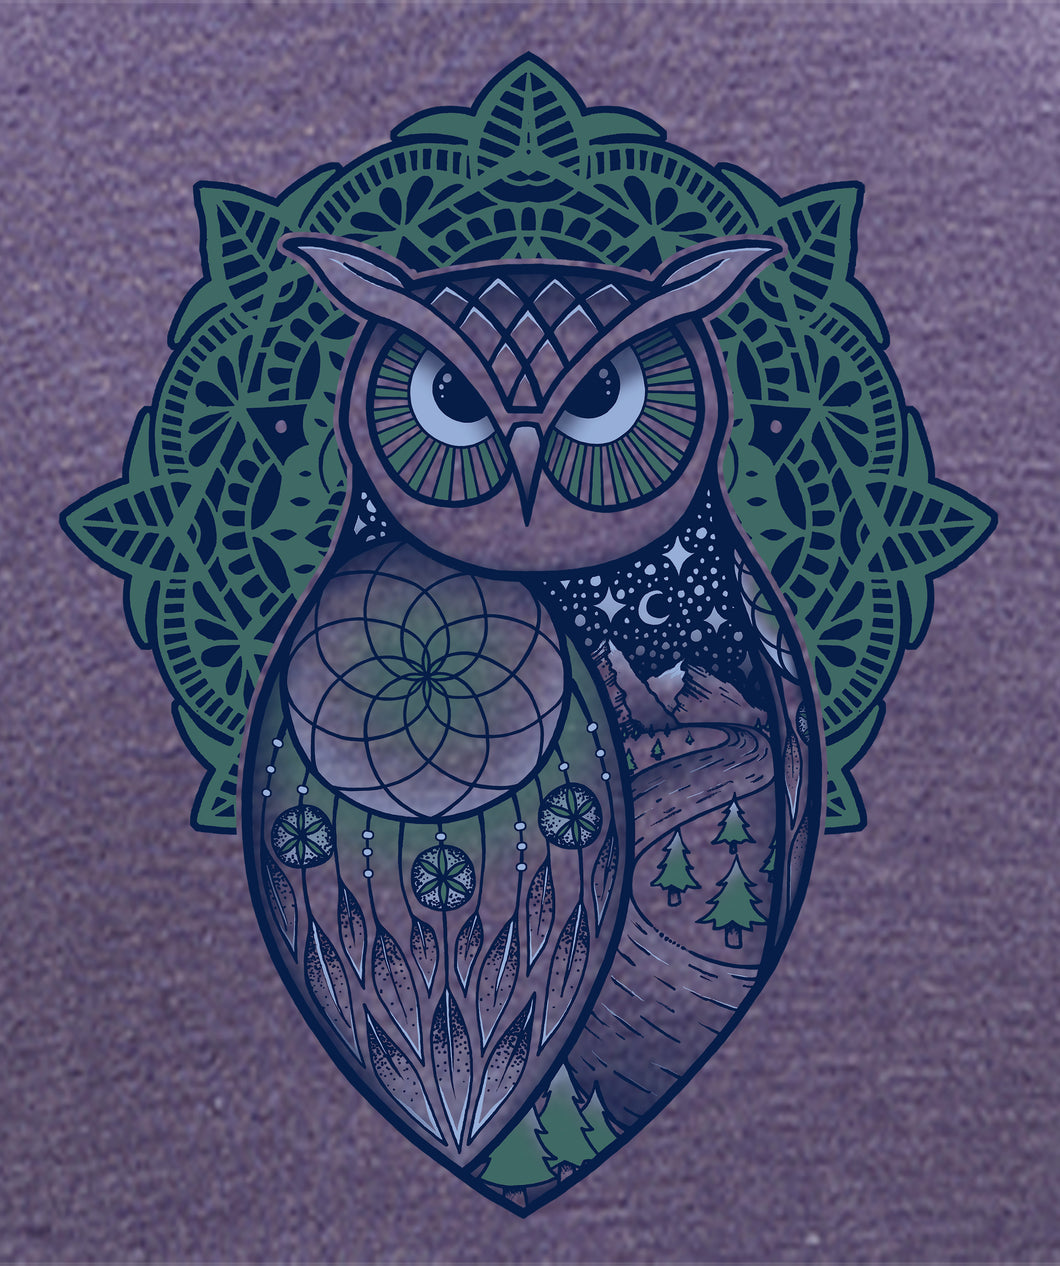 Spirit Owl- artwork of an owl with a dreamcatcher design in the wing